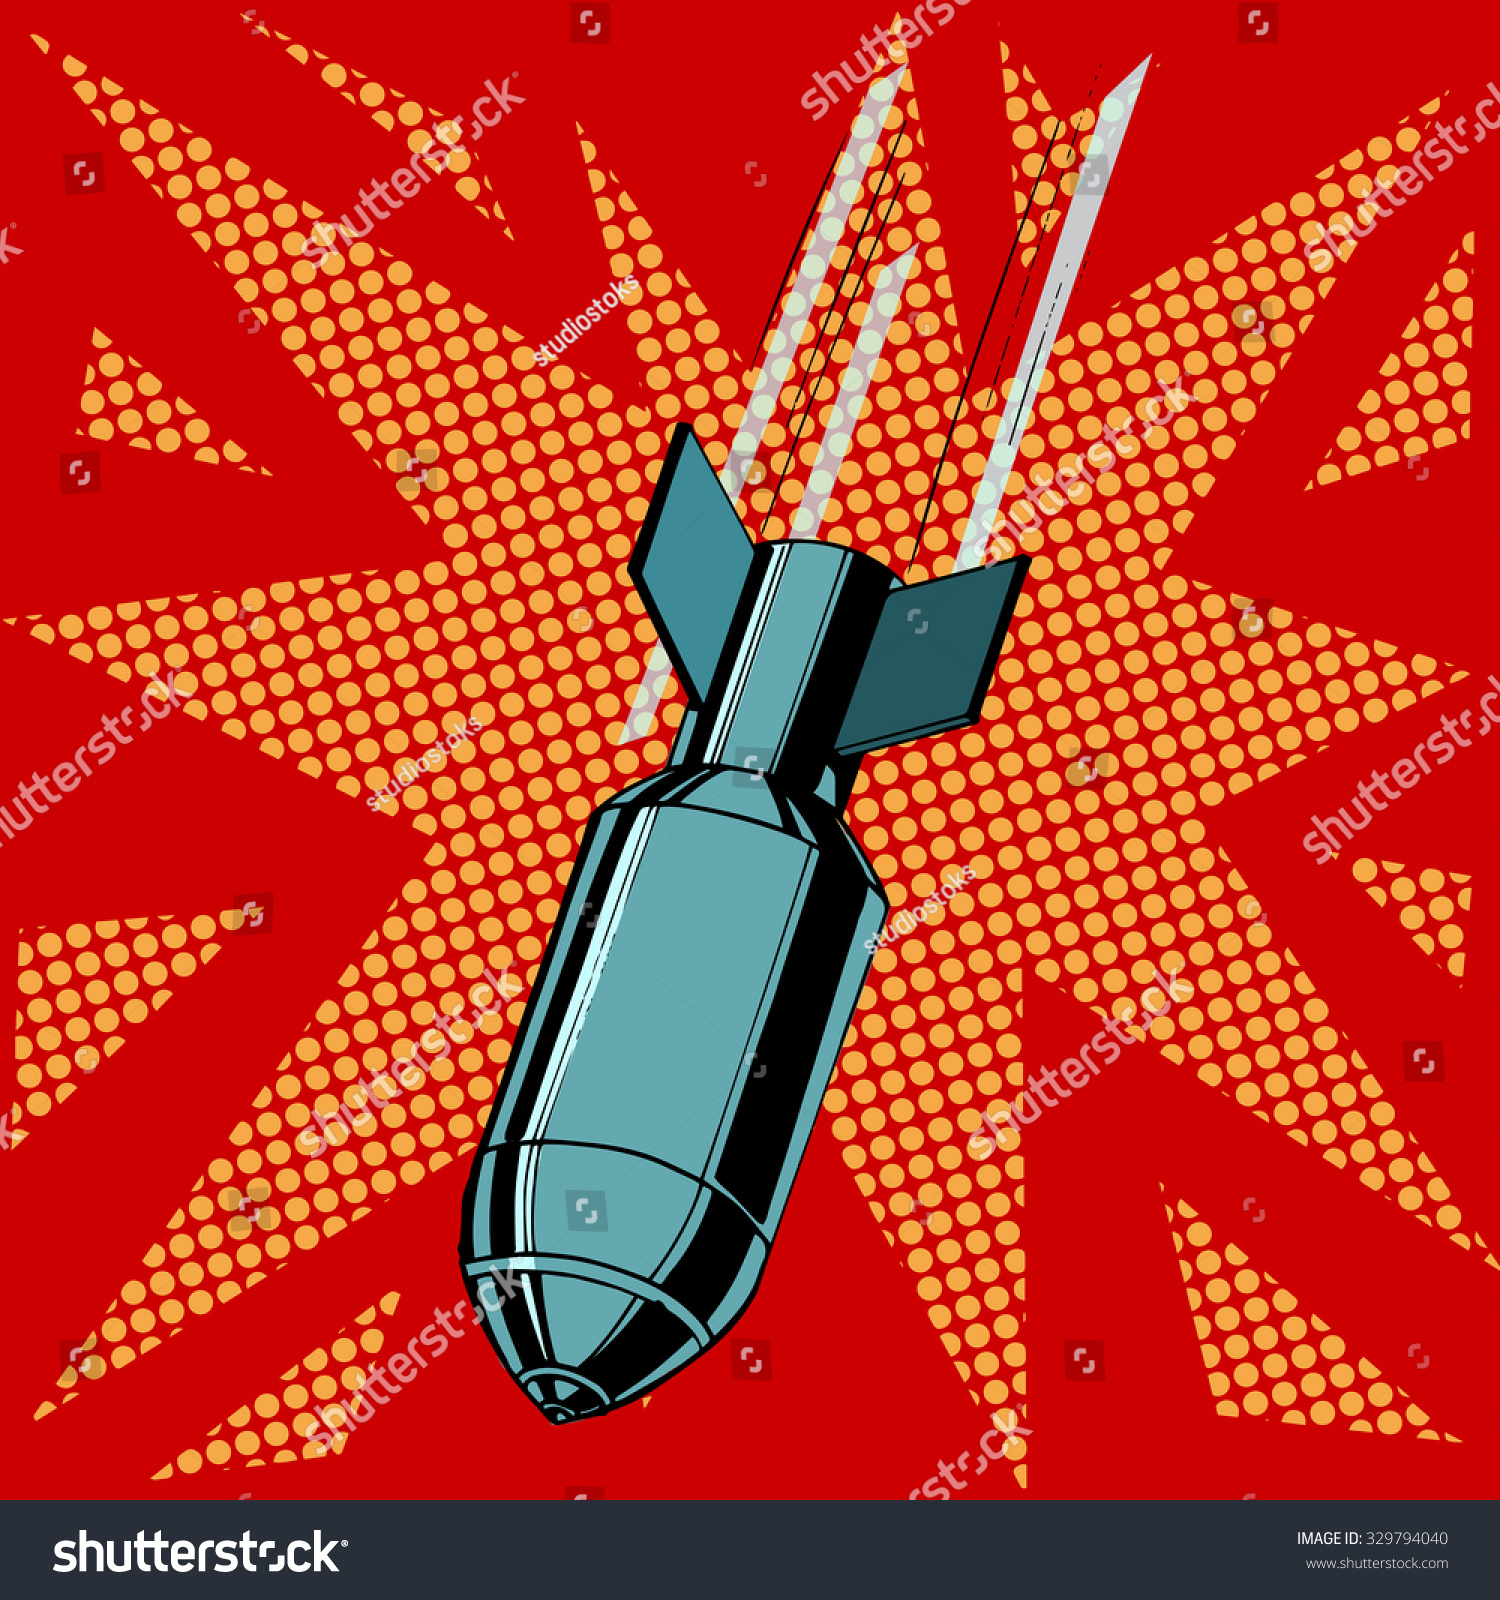 Aviationist bomb explosion War of destruction attack the army pop art retro style